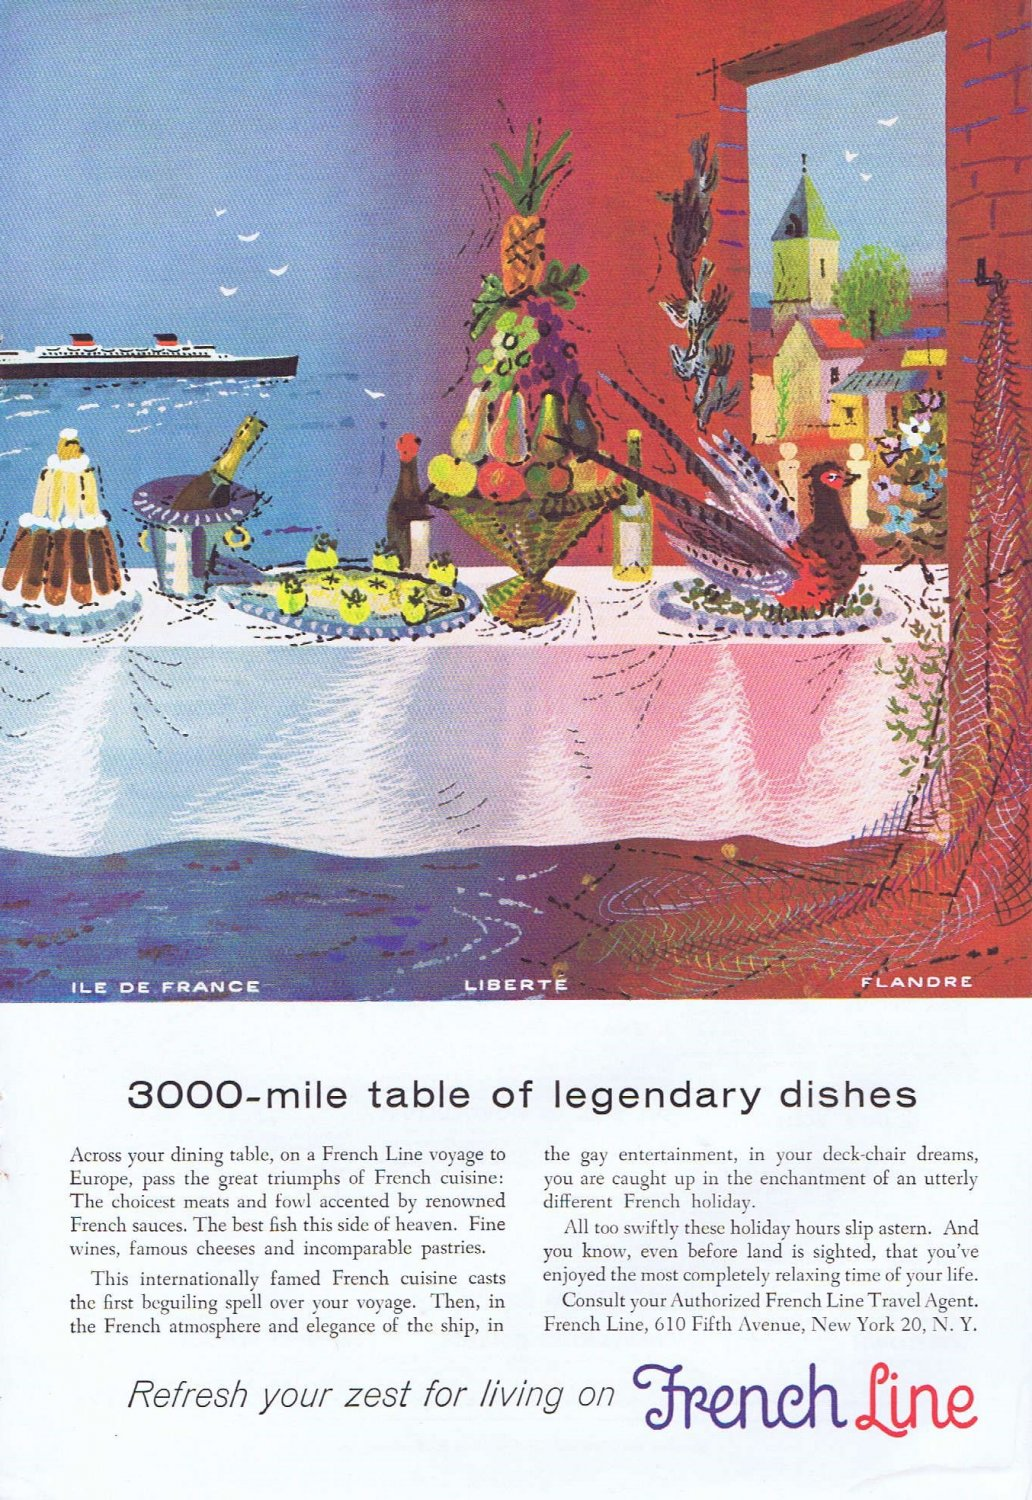 1955 French Cruise Line Original Vintage Advertisement of Legendary Dishes